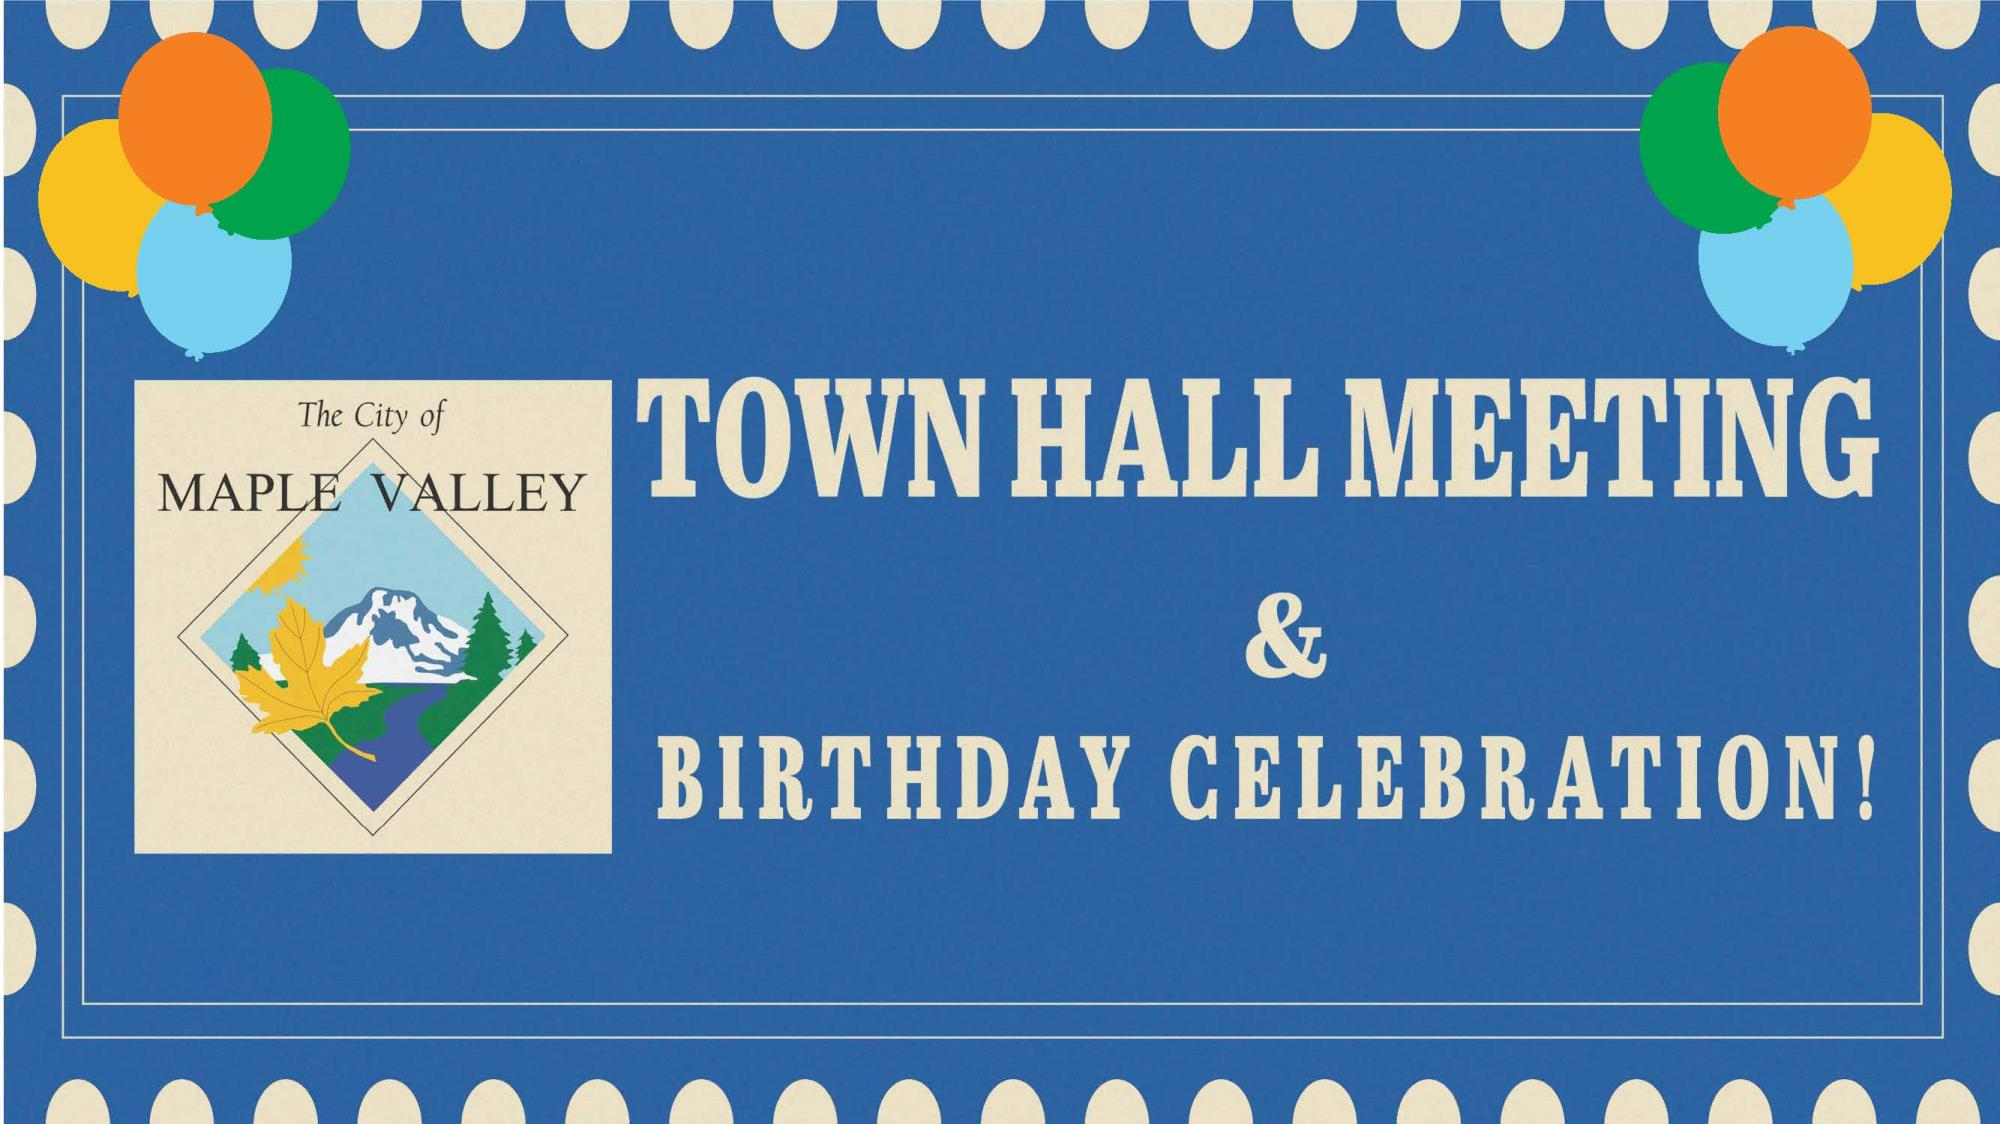 2018 Town Hall Meeting & Birthday Celebration